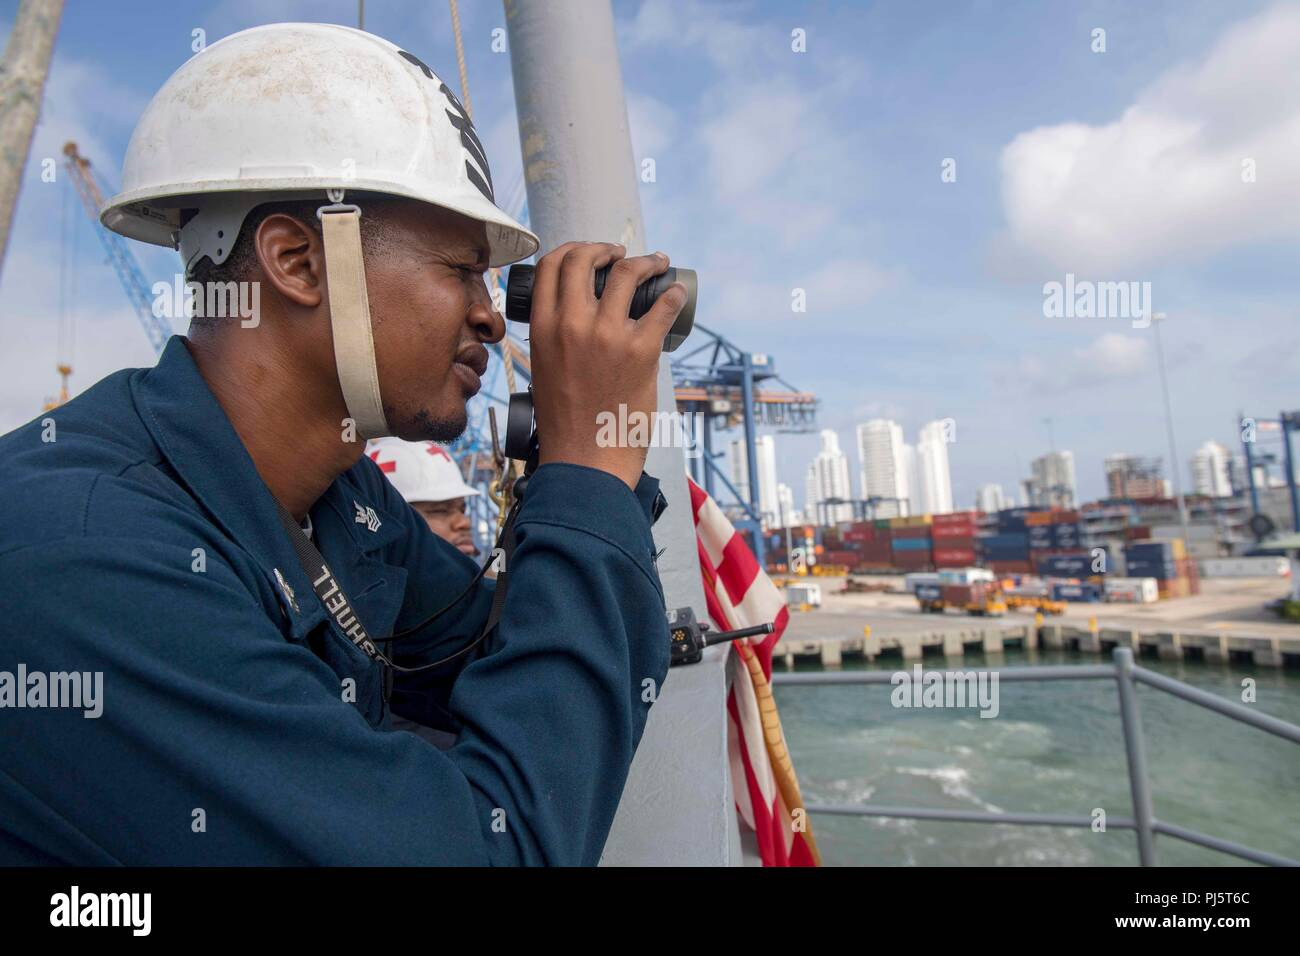 180827-N-GX781-0019 CARTAGENA, Colombia (Aug. 27, 2018) Boatswain's Mate 1st Class Lester Jones tracks the distance to the pier as the Whidbey Island-Class Dock Landing Ship USS Gunston Hall (LSD 44) pulls in to Cartagena, Colombia for a scheduled port visit. The ship is on deployment supporting Southern Seas, which is an annual collaborative deployment in the U.S. Southern Command area of responsibility where a task group will deploy to conduct a variety of exercises and multinational exchanges to enhance interoperability, increase regional stability, and build and maintain regional relations Stock Photo